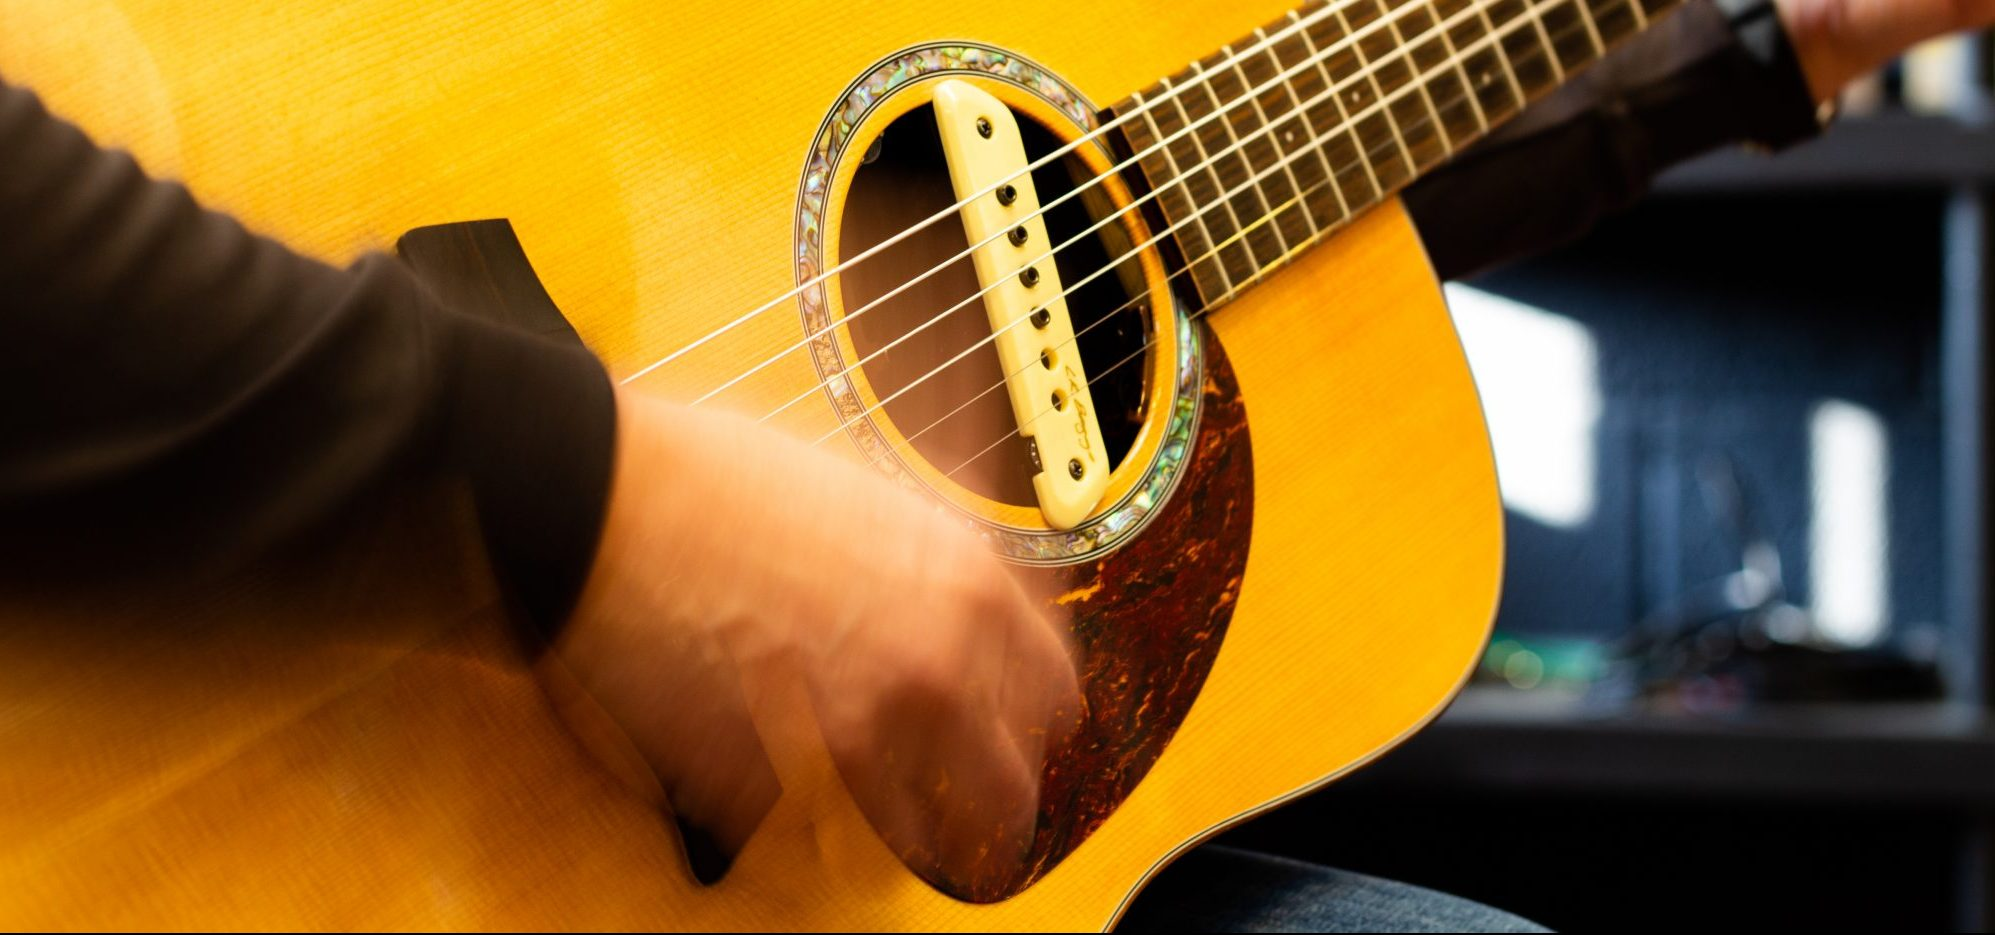 Acoustic guitar player with soundhole pickup